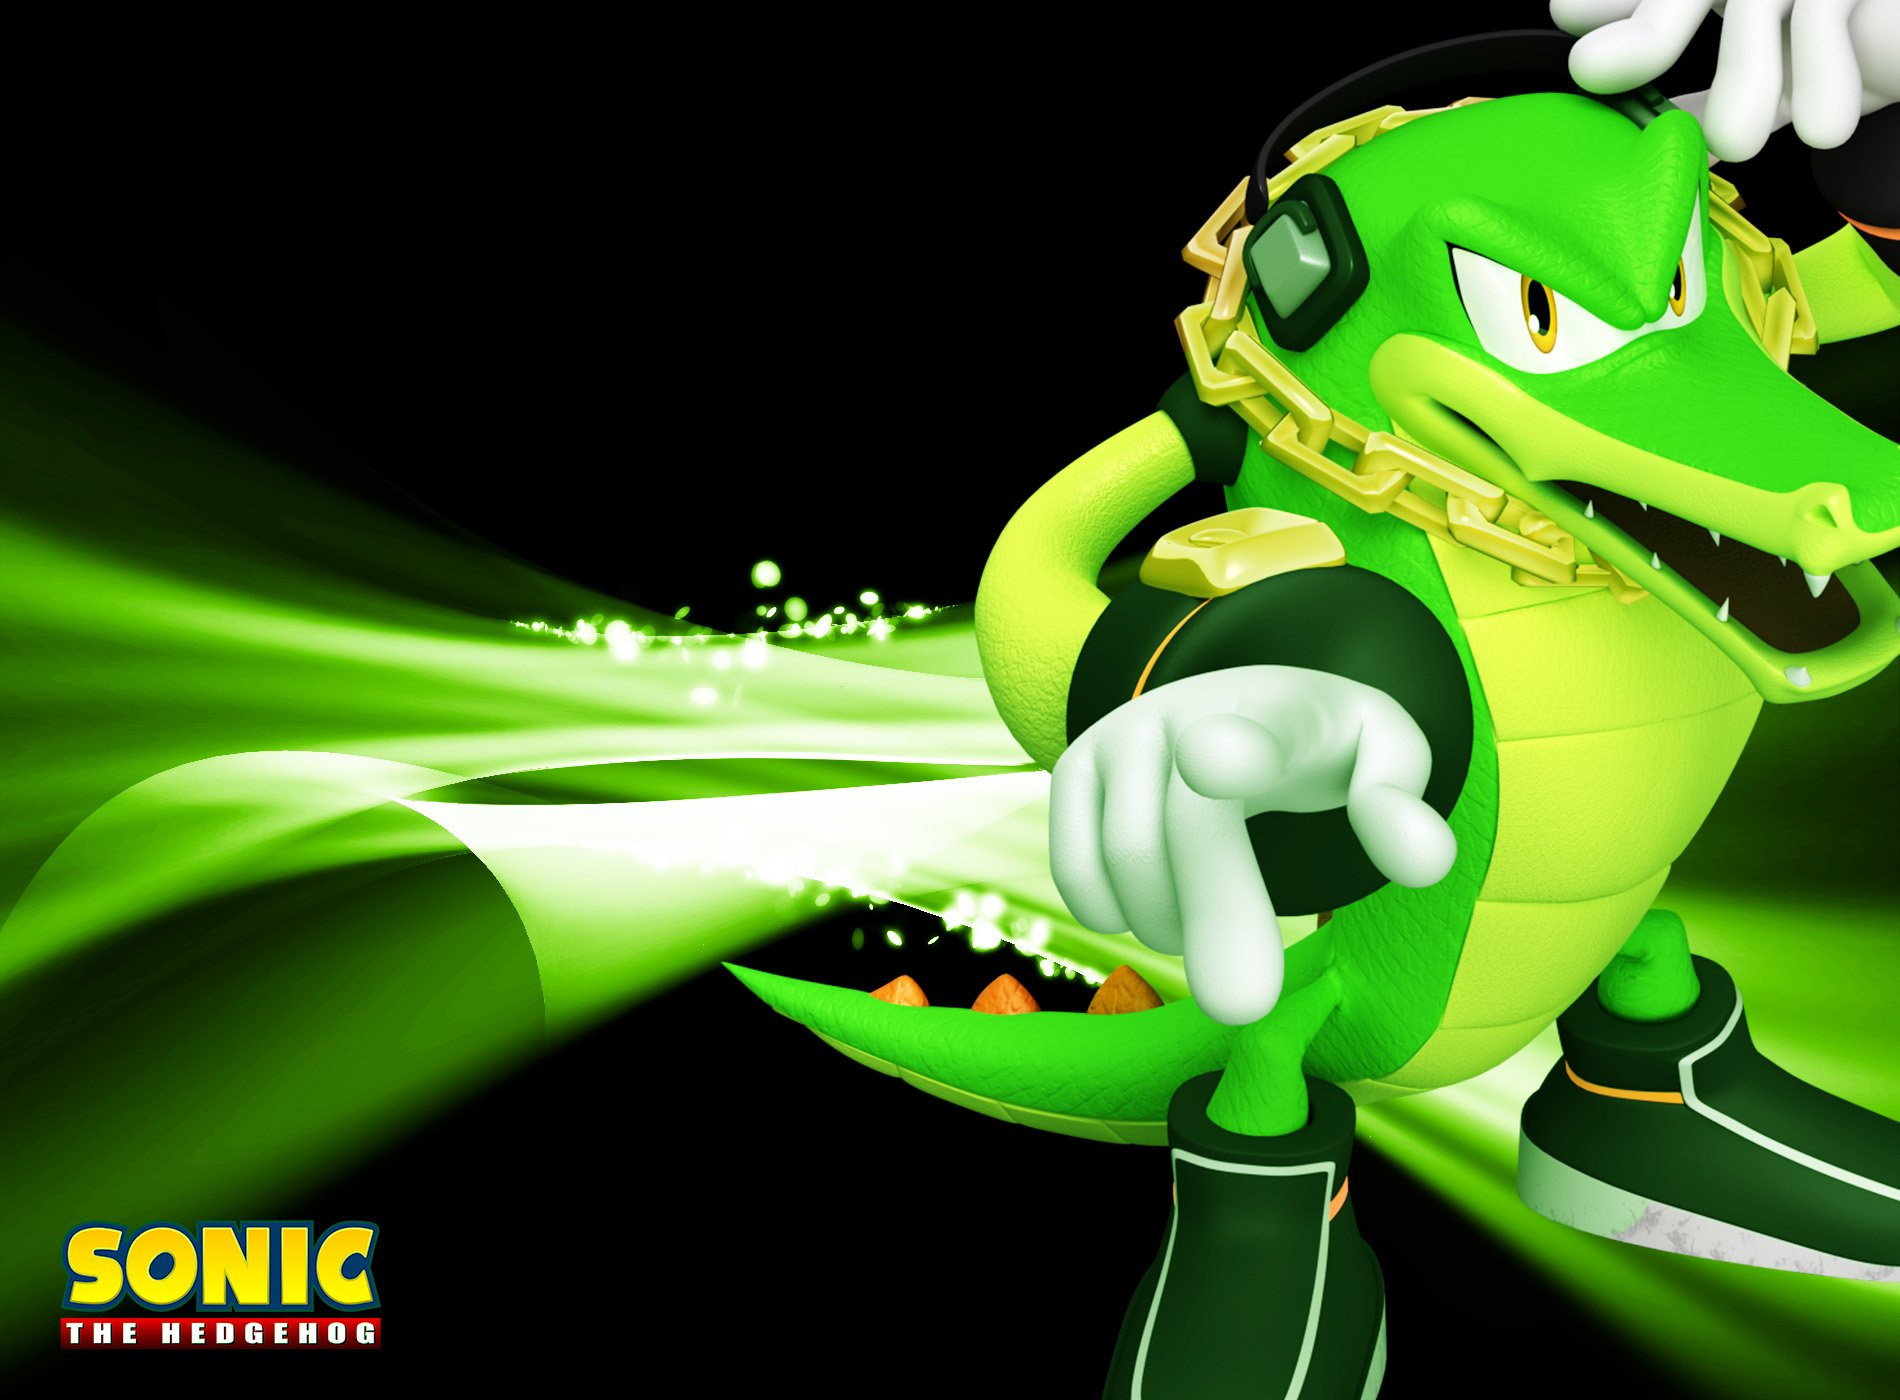 Mario Wallpaper Iphone 5 Mario Amp Sonic At The Olympic Games Wallpaper And